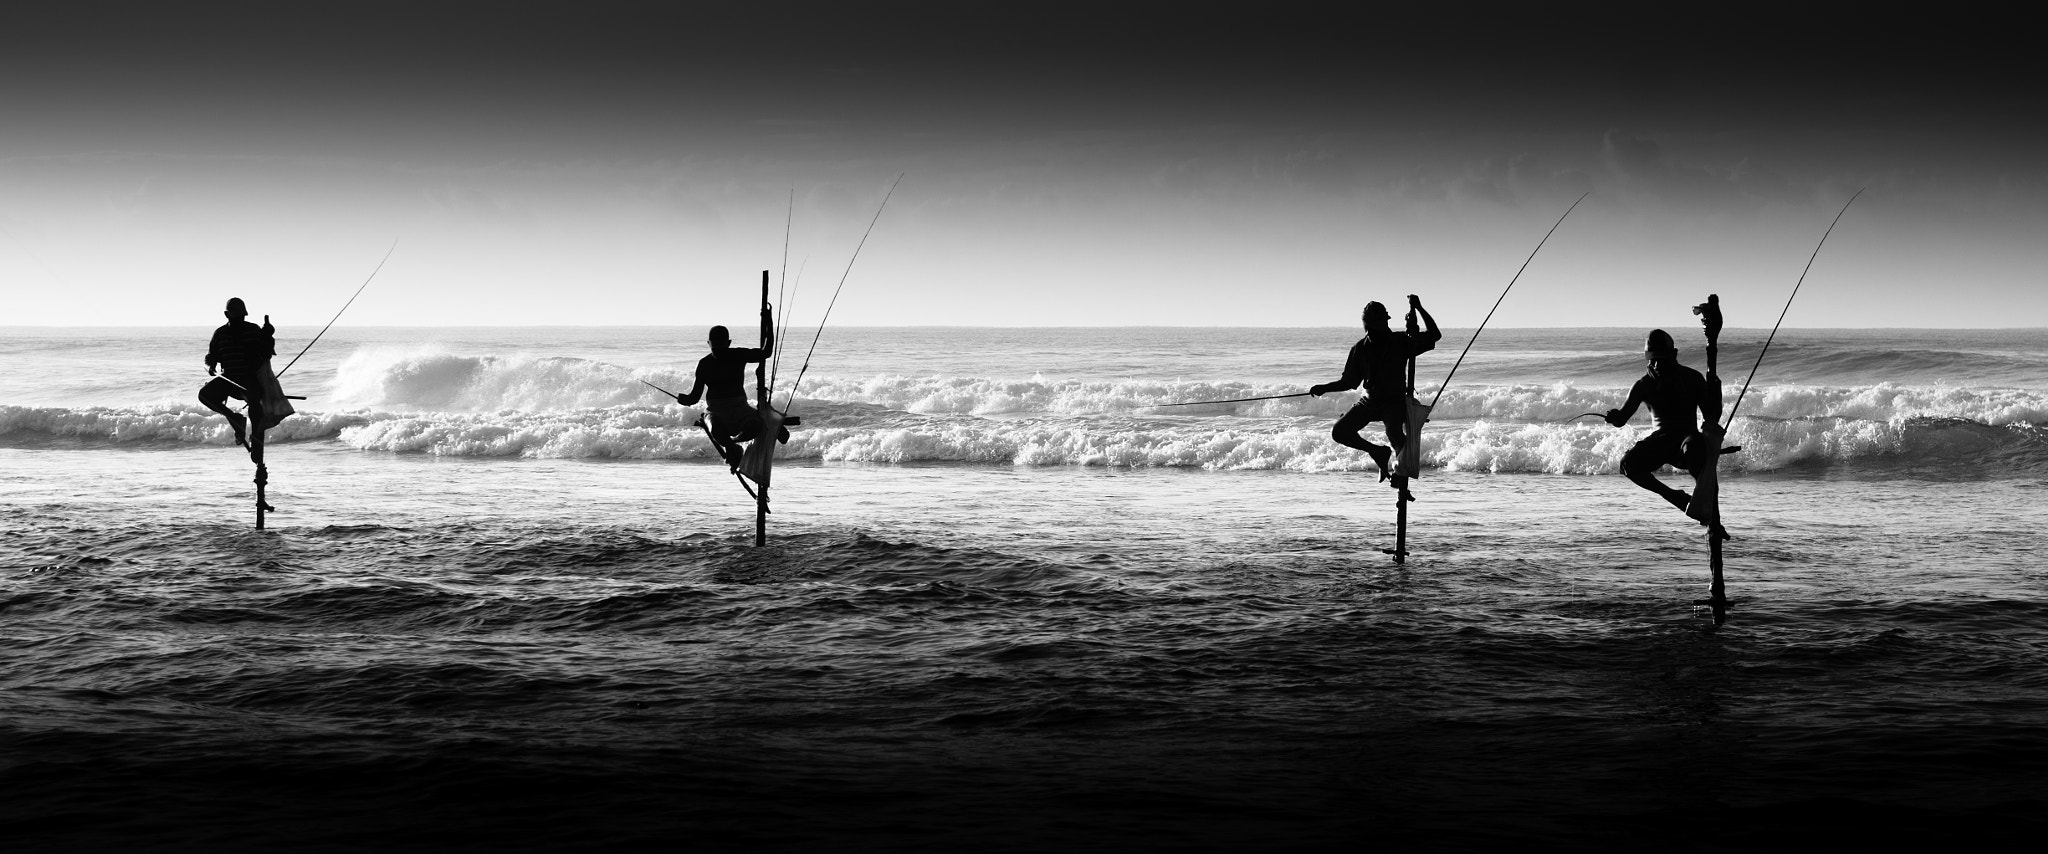 Photograph Sri Lankan Stilt Fishermen by Alexander Stephan on 500px